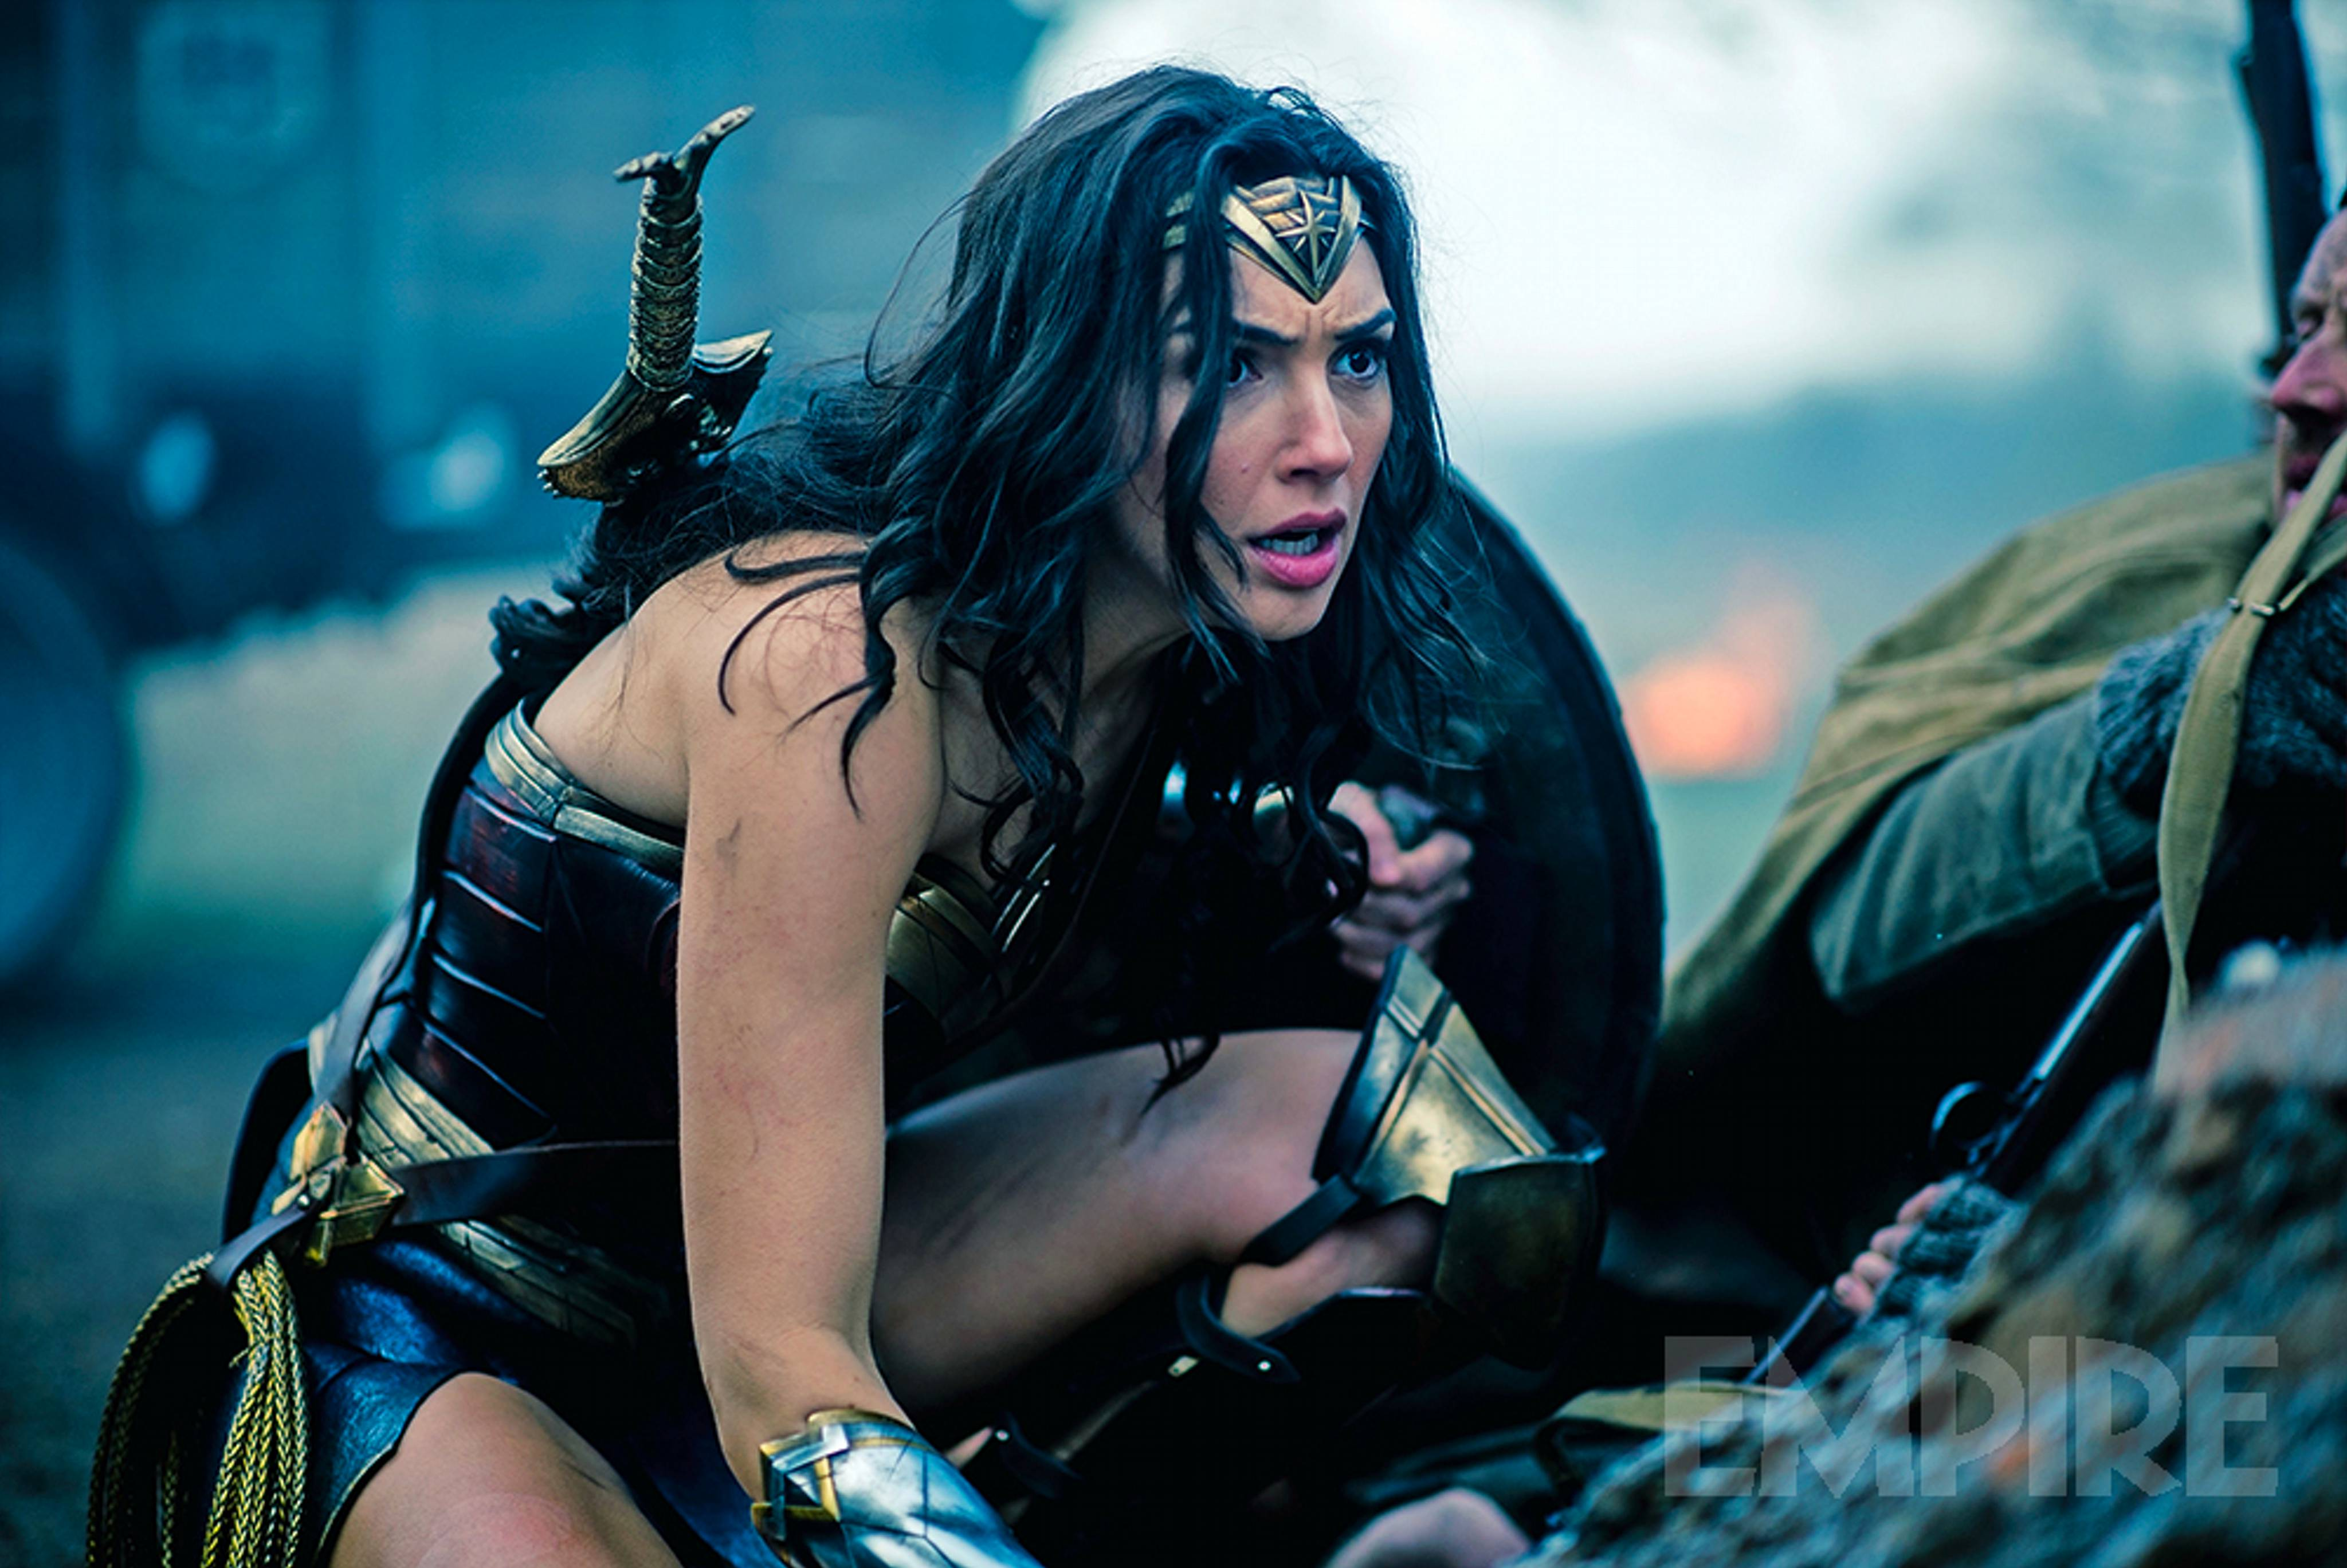 Warner Bros. Releases First Wonder Woman Trailer At Comic-Con